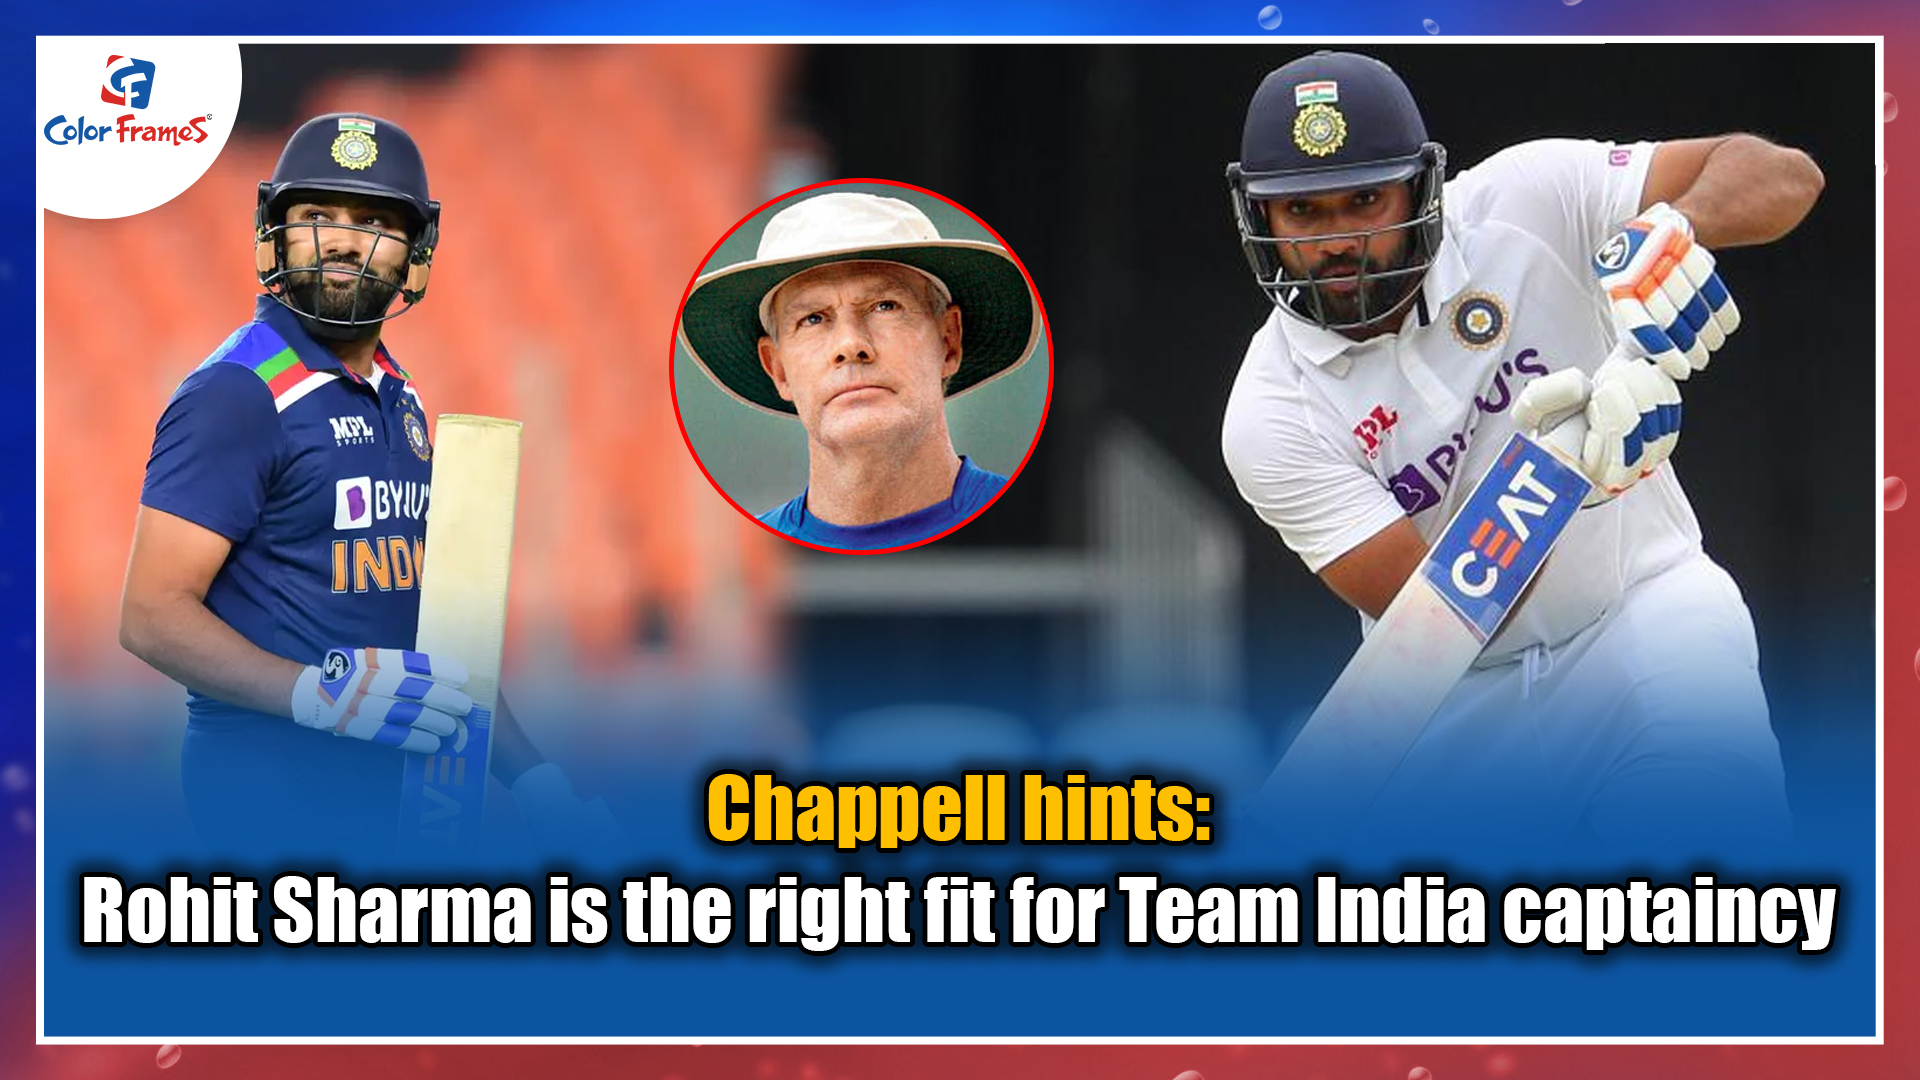 Chappell hints: Rohit Sharma is the right fit for Team India captaincy